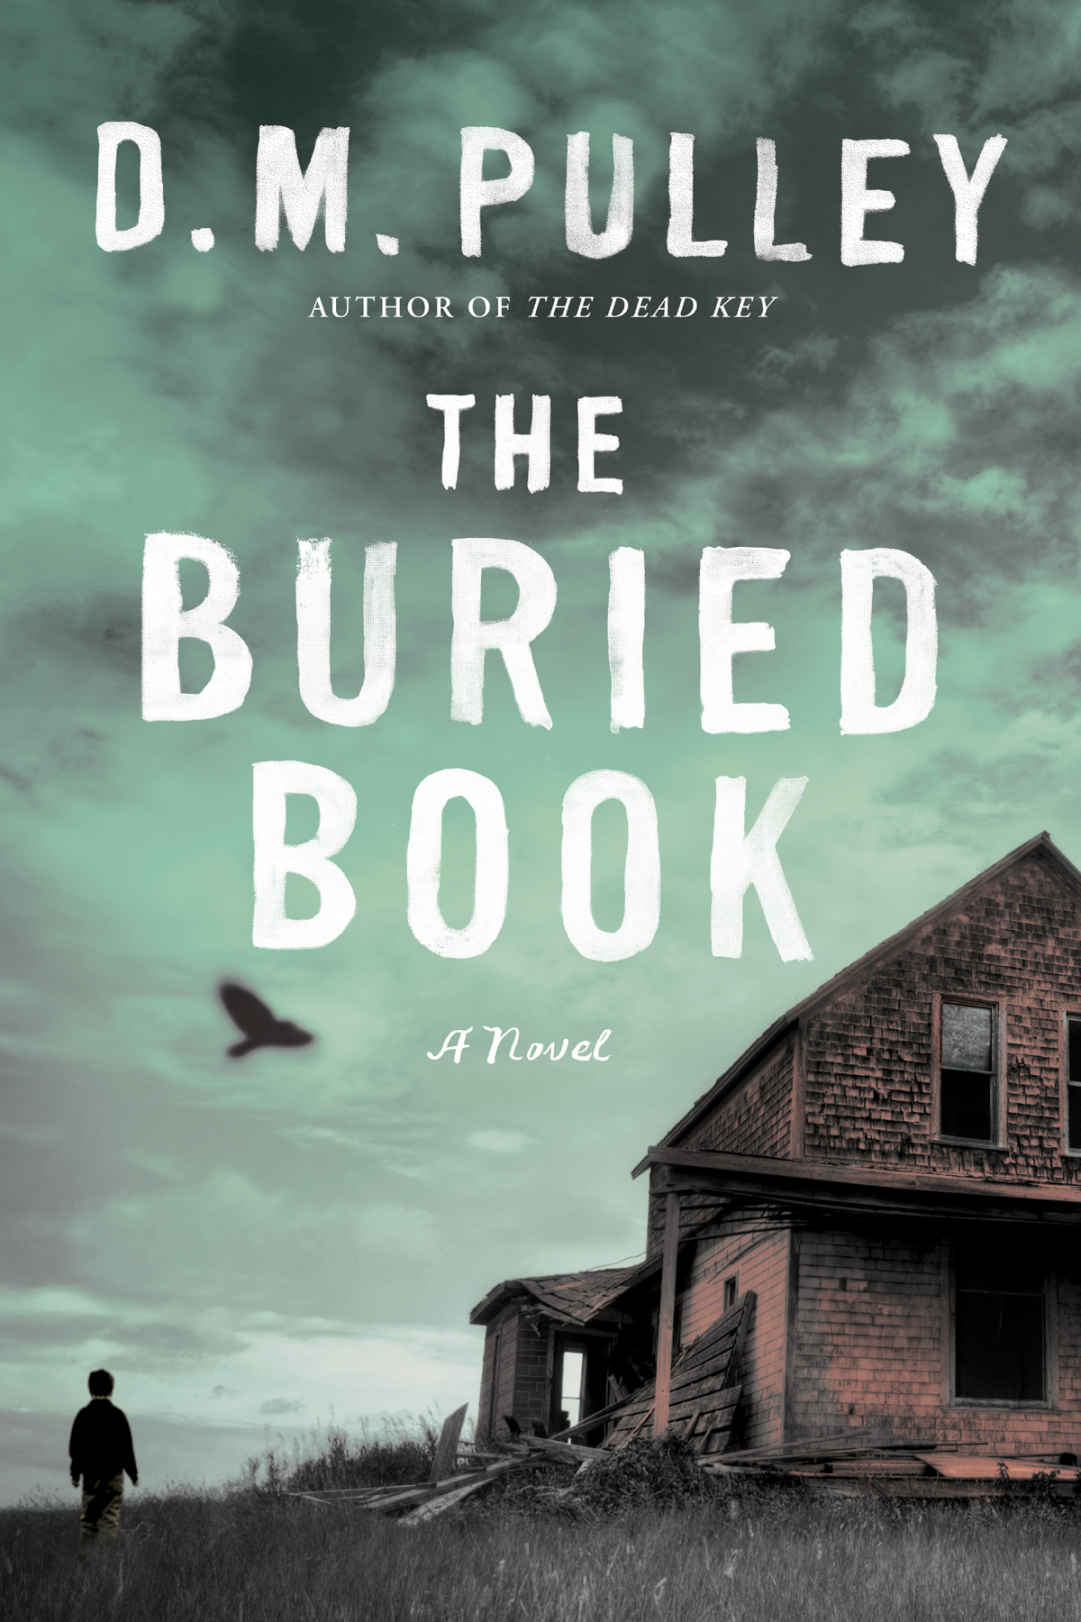 The Buried Book - D. M. Pulley [kindle] [mobi]